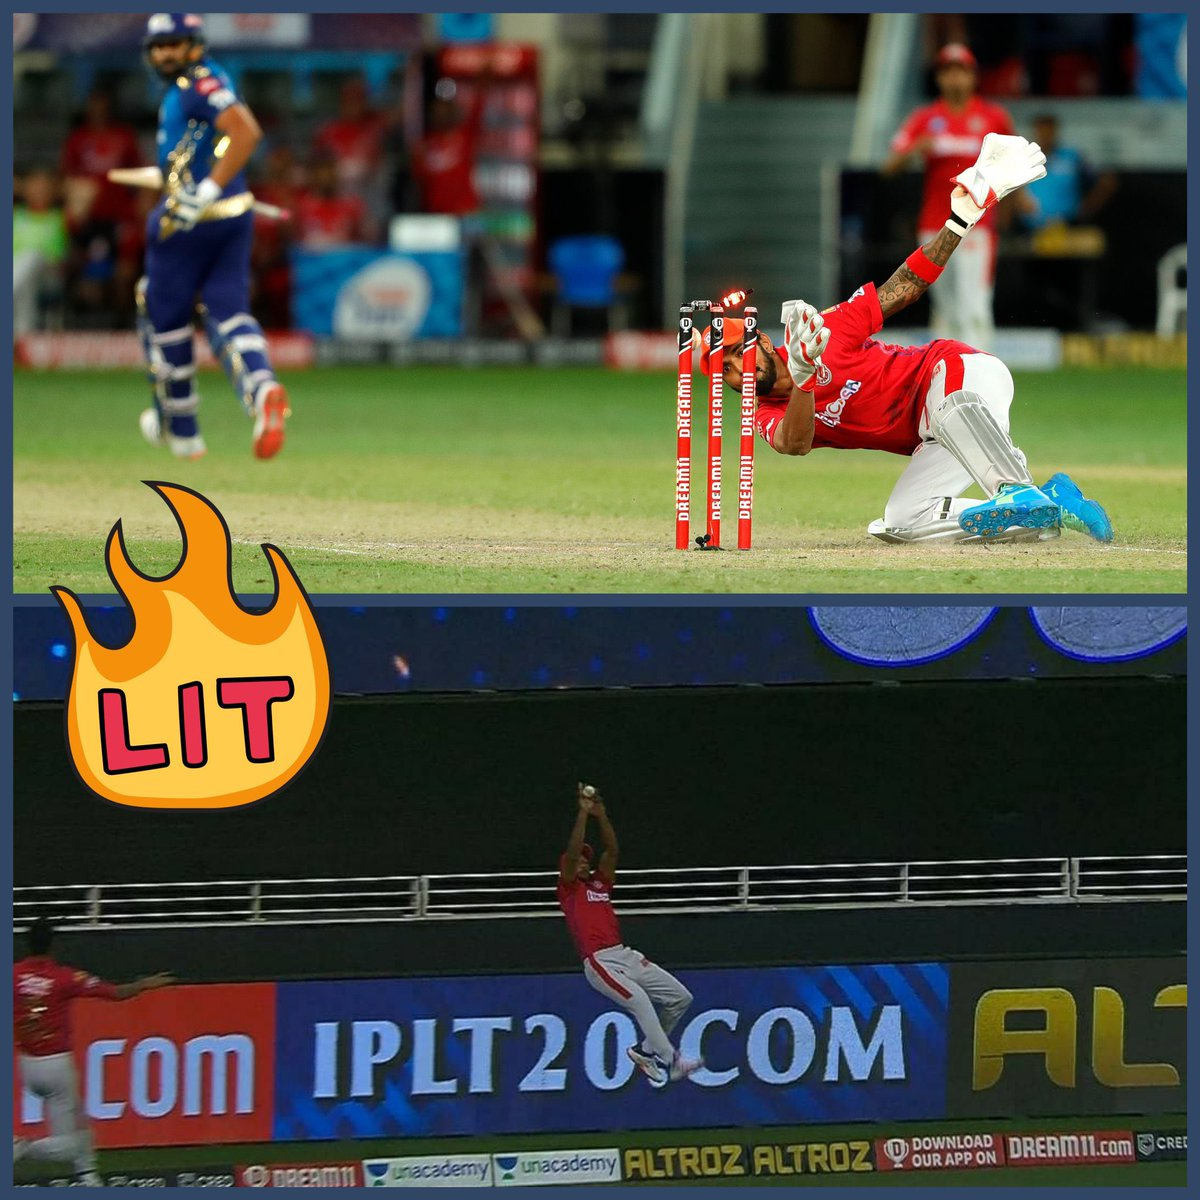 Well done boys, @klrahul11 @mayankcricket !! In a game as tight as yesterday's these two moments of brilliance from you guys stand out #DoddaMathu #IPL2020 #KXIPvMI